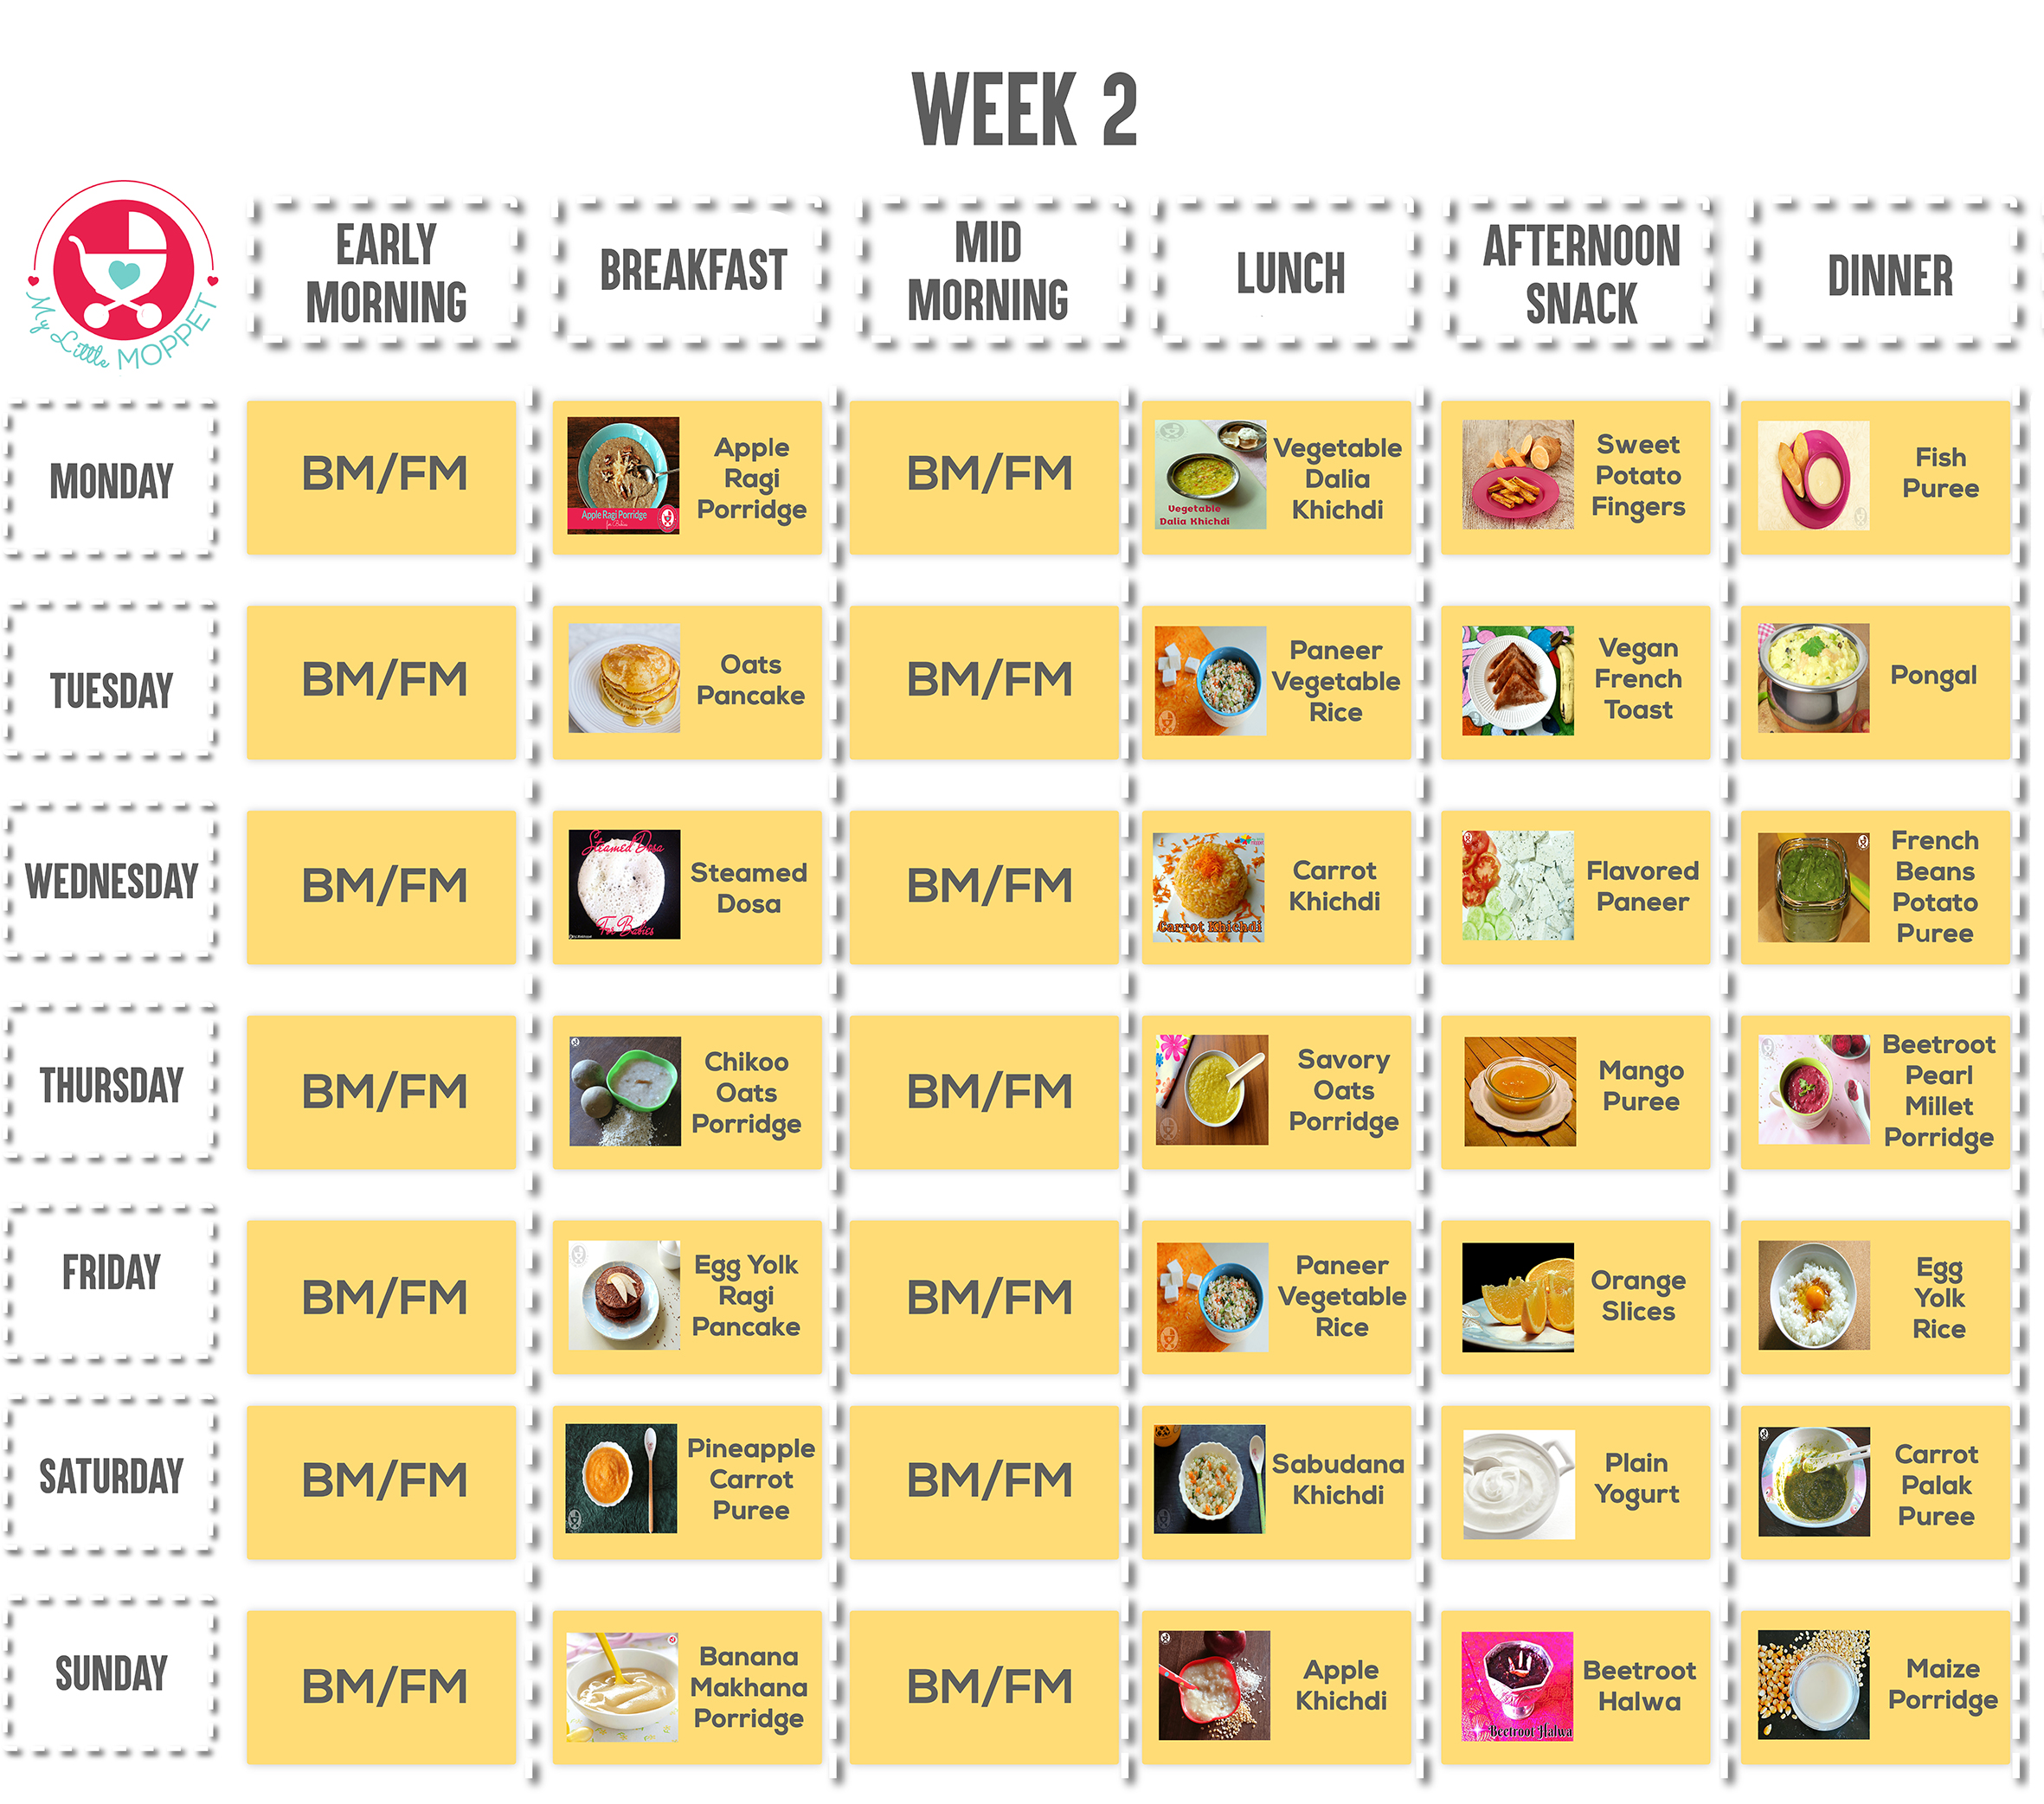 Food Chartmeal Plan 9 Month Old Baby Mylittlemoppet